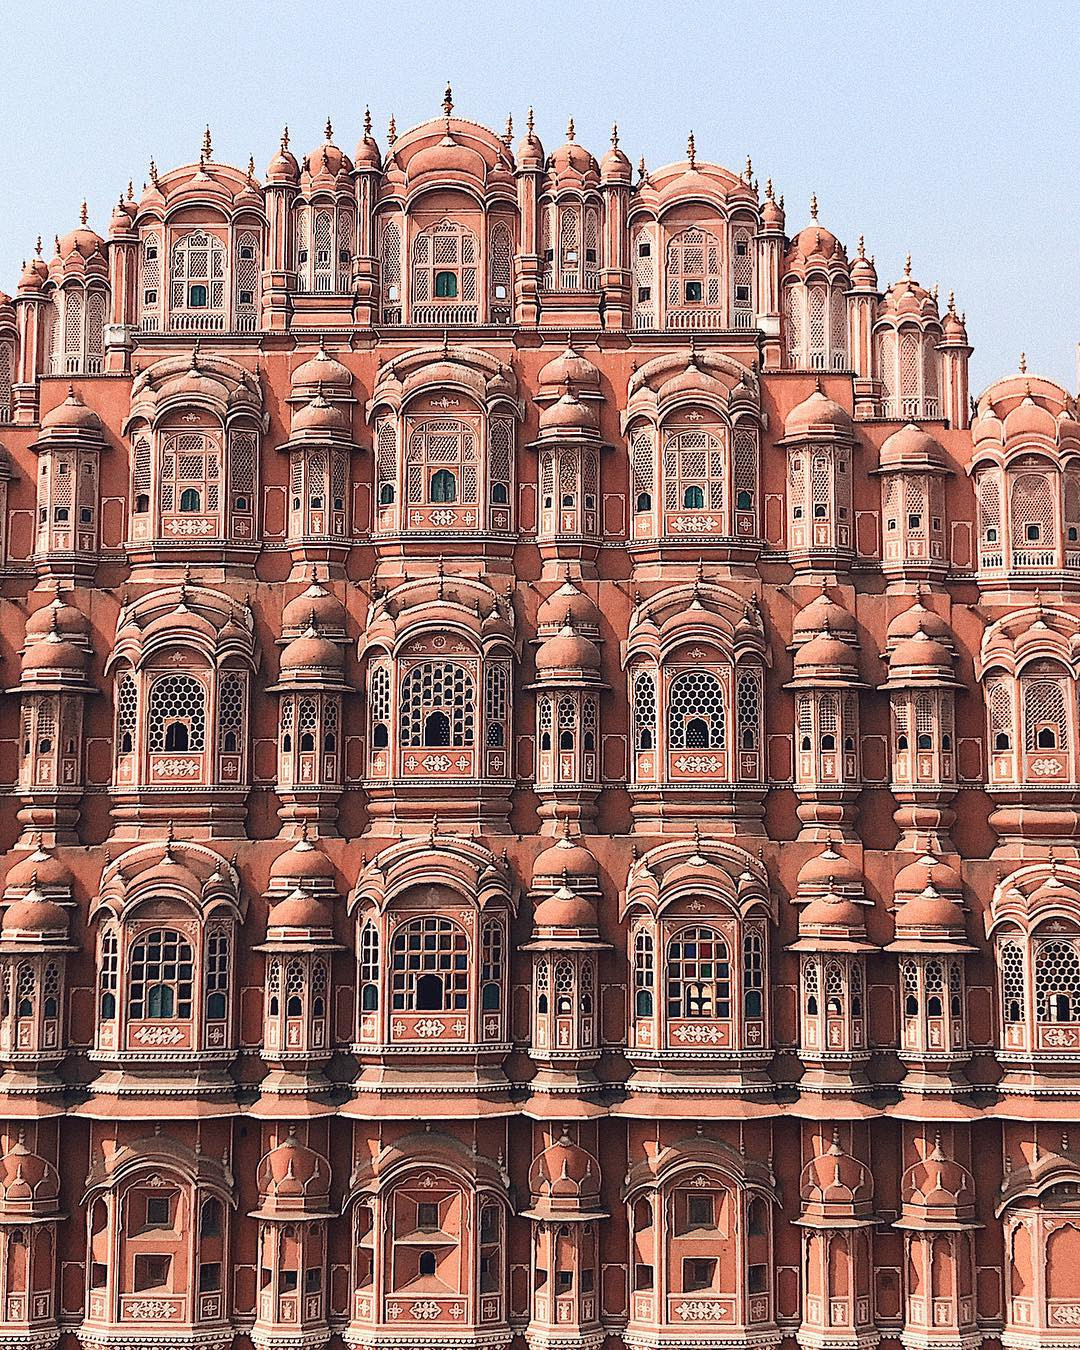 Hawa Mahal palace (Palace of the Winds), Jaipur, India. instagram.com/the_zlist